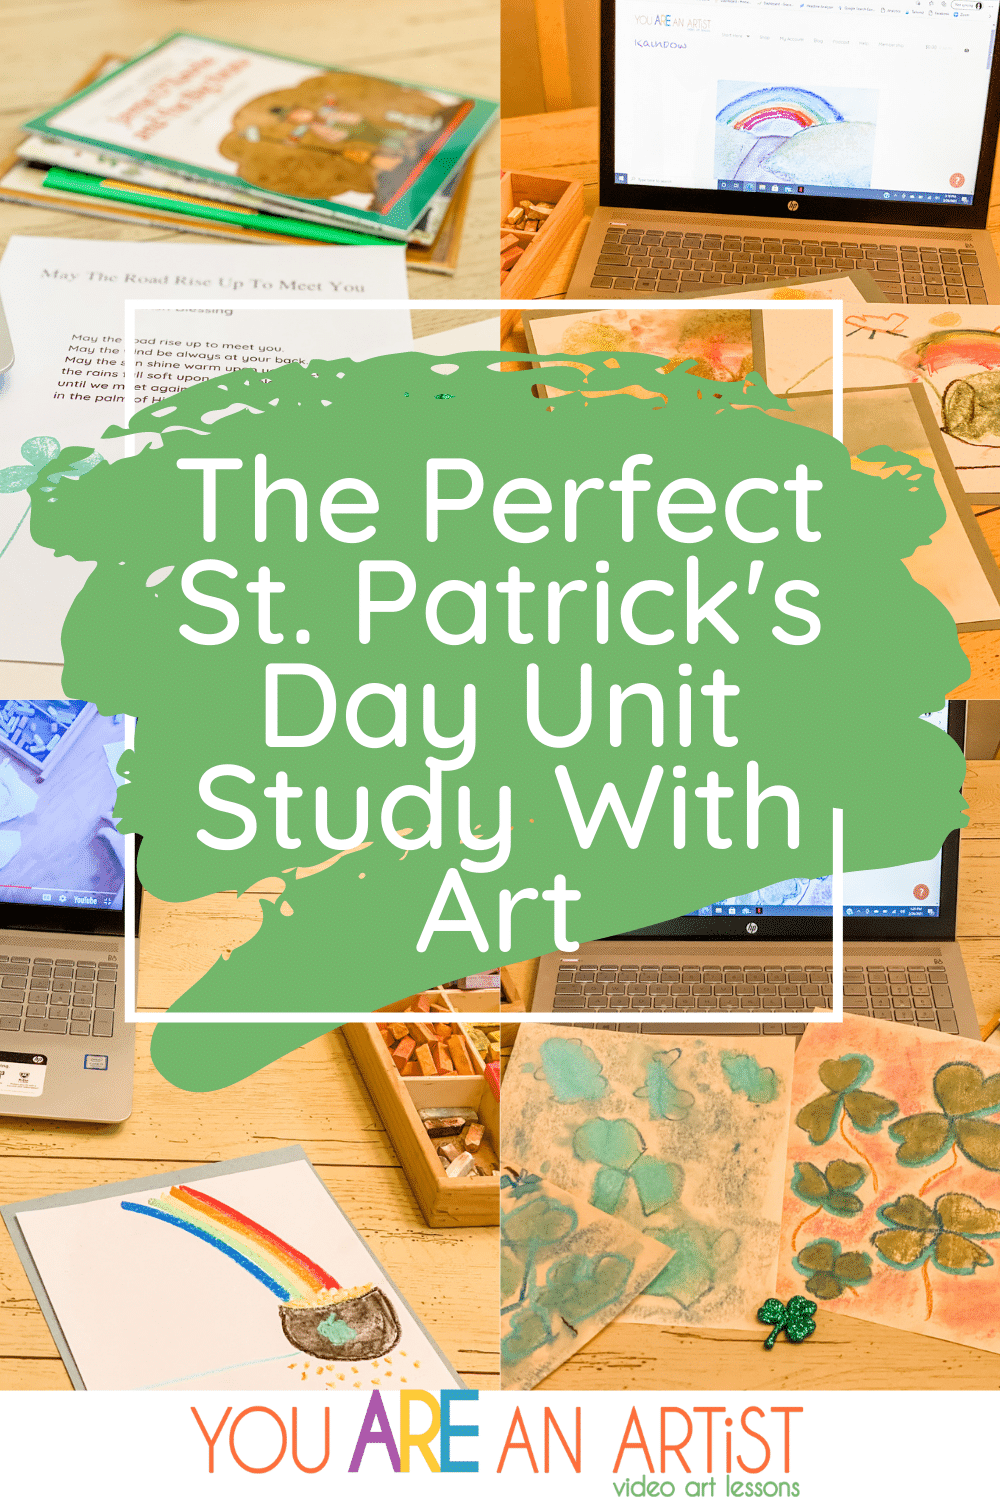 We have the perfect way to celebrate St. Patrick's Day in your homeschool! Art, unit study ideas, and more! #homeschool #stpatricks #stpatricksday #stpatricksdayforkids #homeschoolart